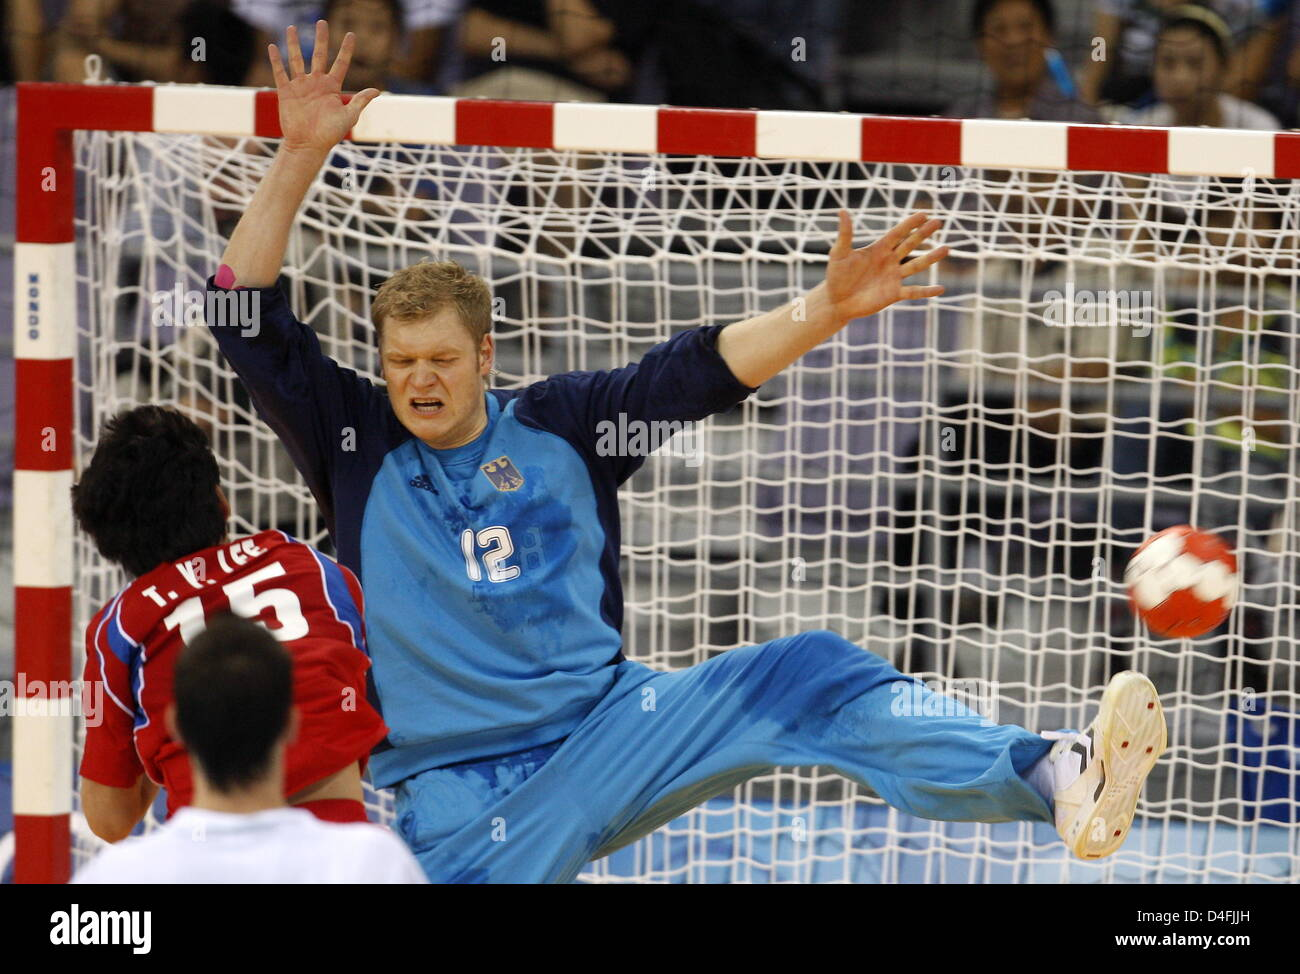 Goalkeeper Johannes Bitter (R) of Germany wards the ball of Teayoung Lee of Korea during the menÒs handball - Stock Image